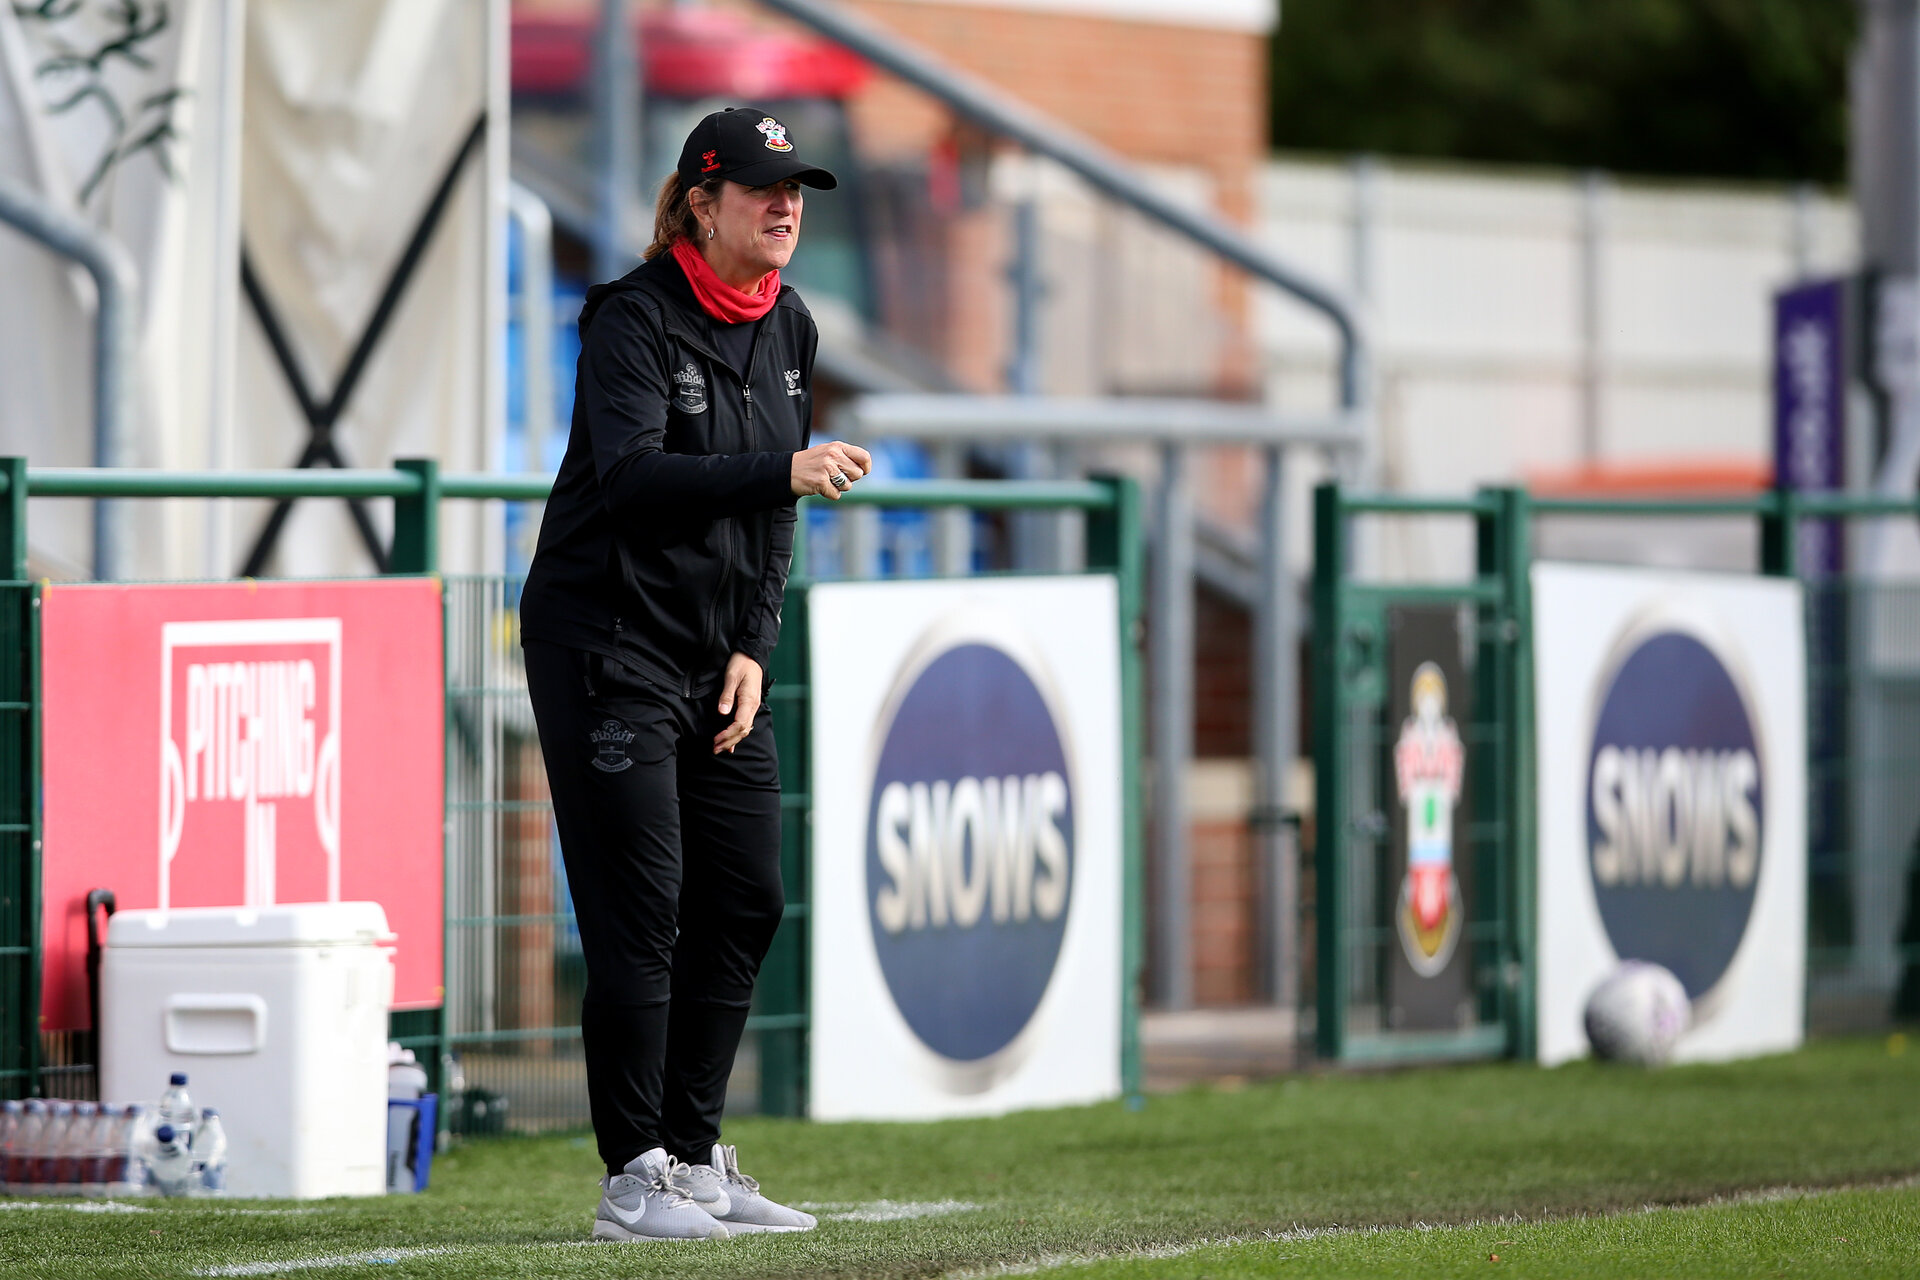 SOUTHAMPTON, ENGLAND - OCTOBER 03:  Marieanne Spacey-Cale Southampton Women's head coach  during the FA National League Southern Premier match between Southampton Women and Keynsham Town at The Snows Stadium on October 03, 2021 in Southampton, England. (Photo by Isabelle Field/Southampton FC via Getty Images)